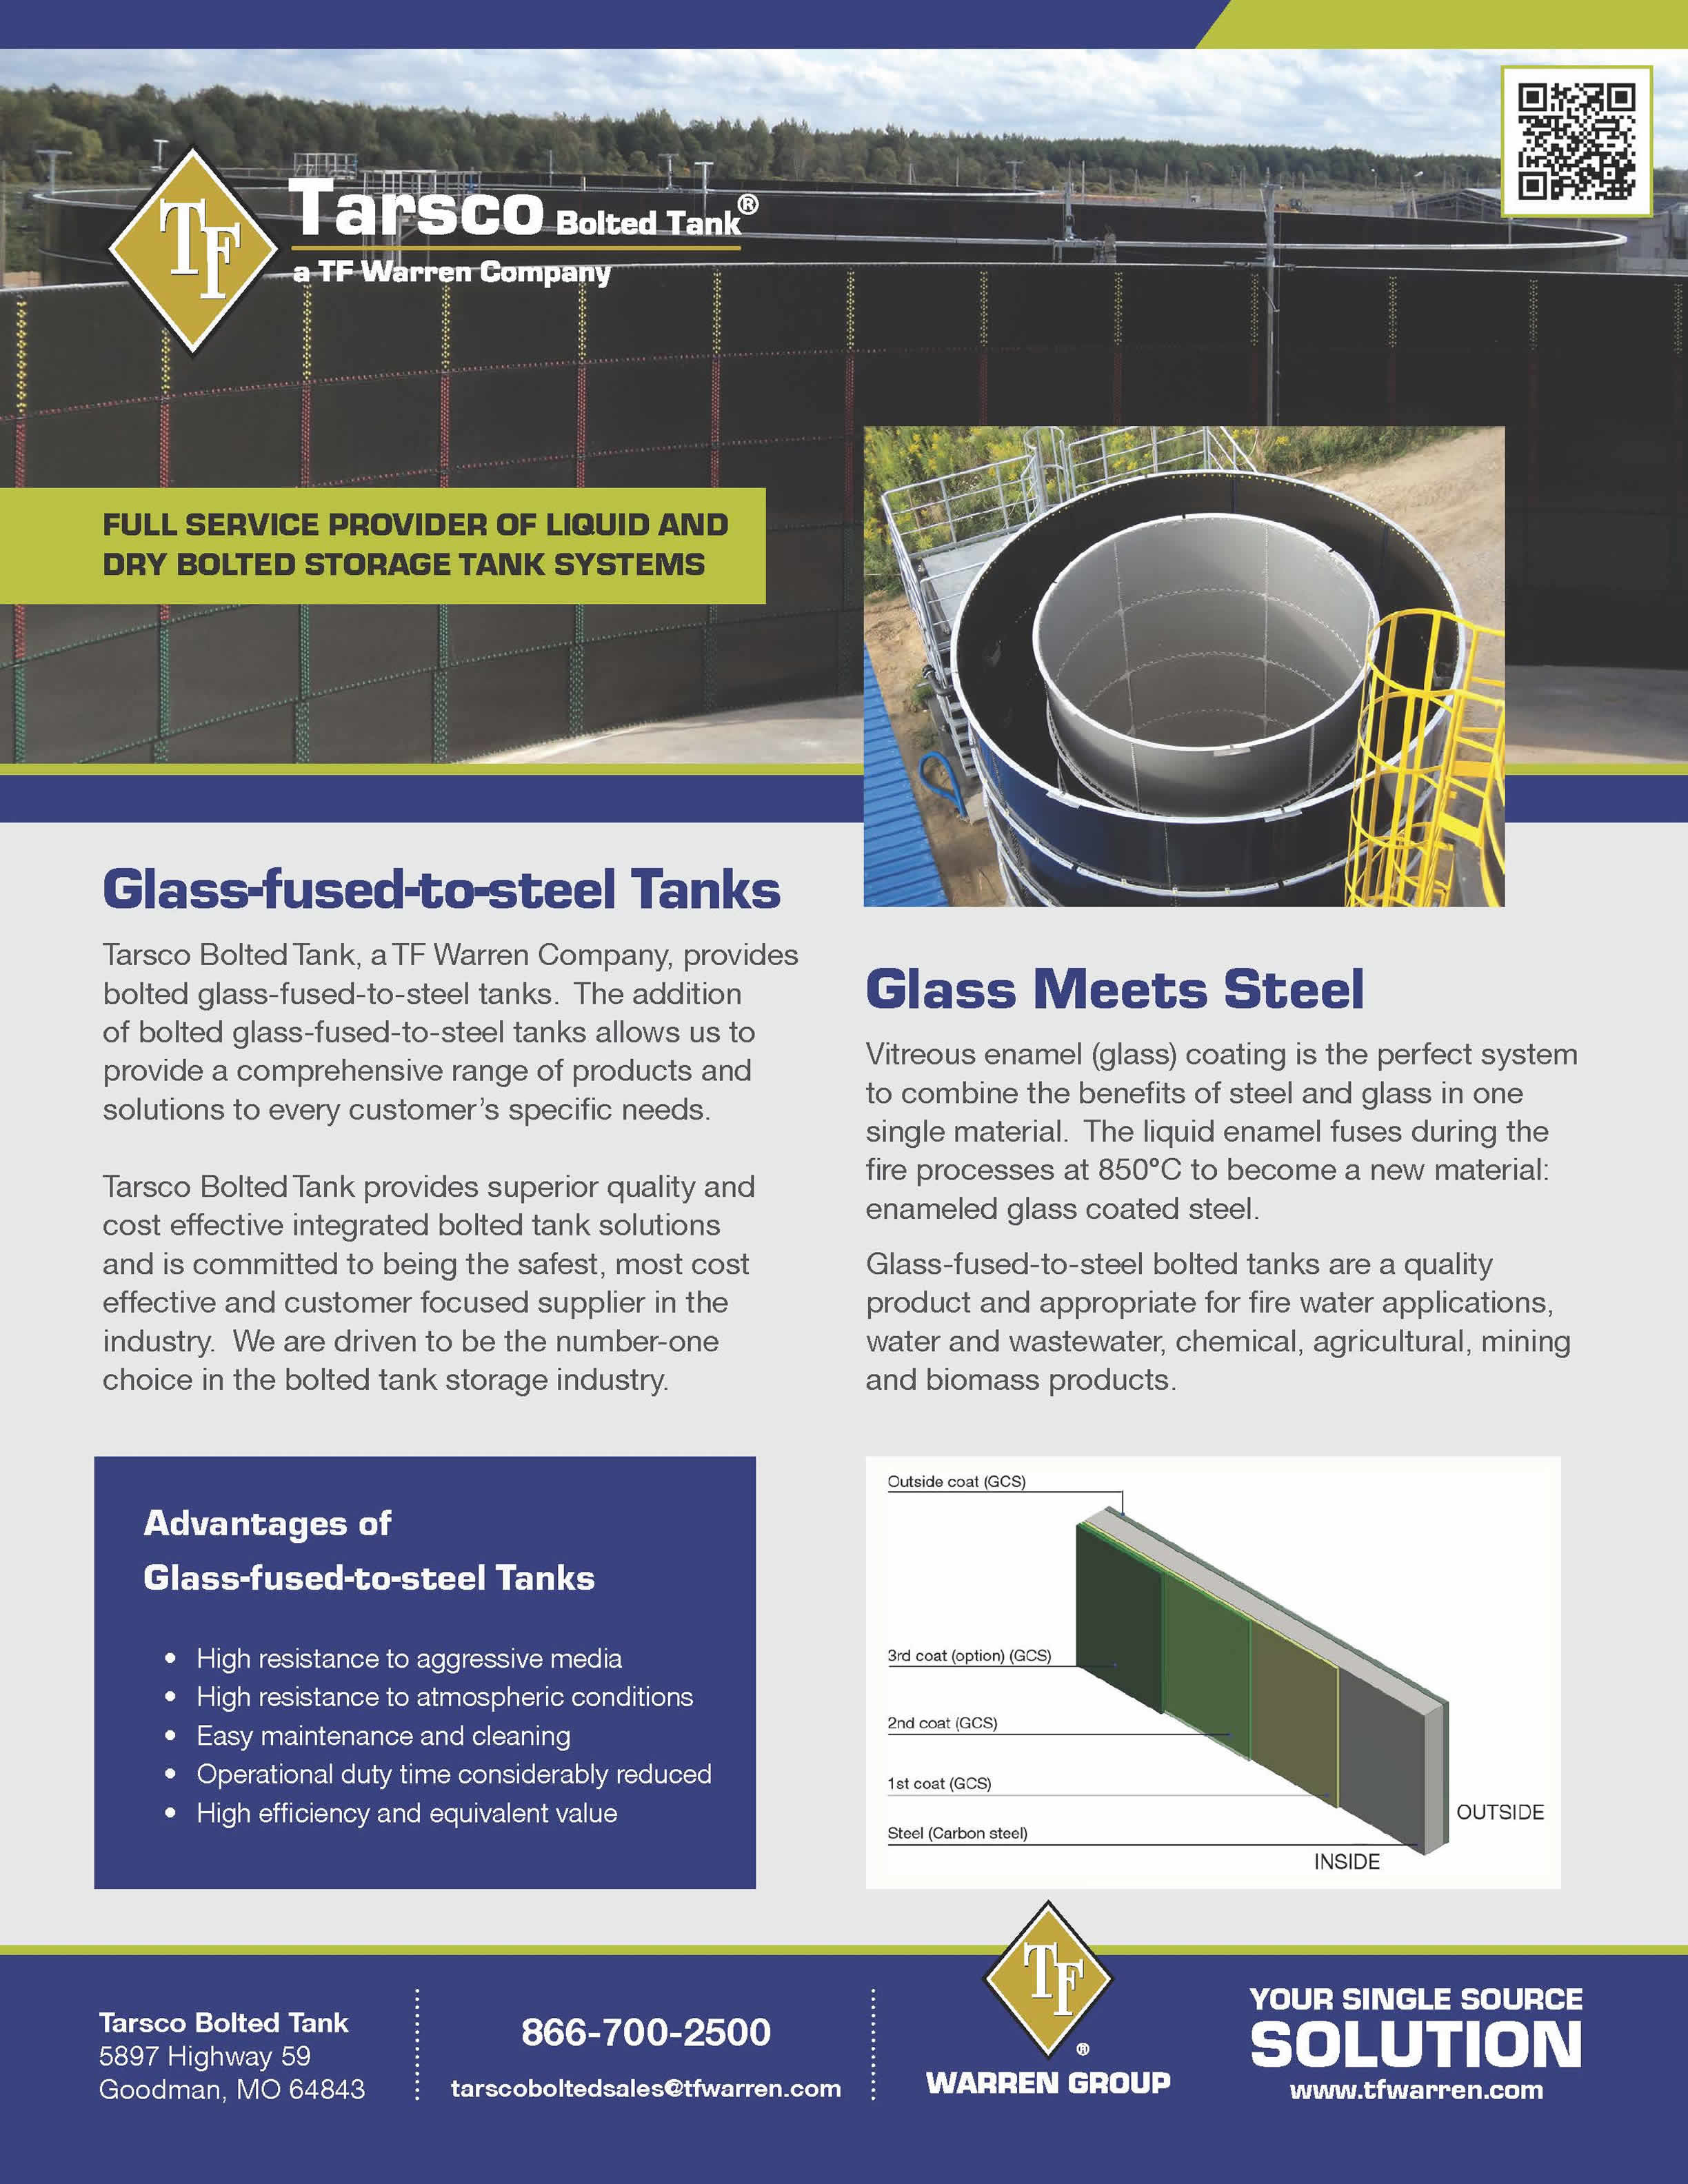 Glass-fused-to-steel Tanks